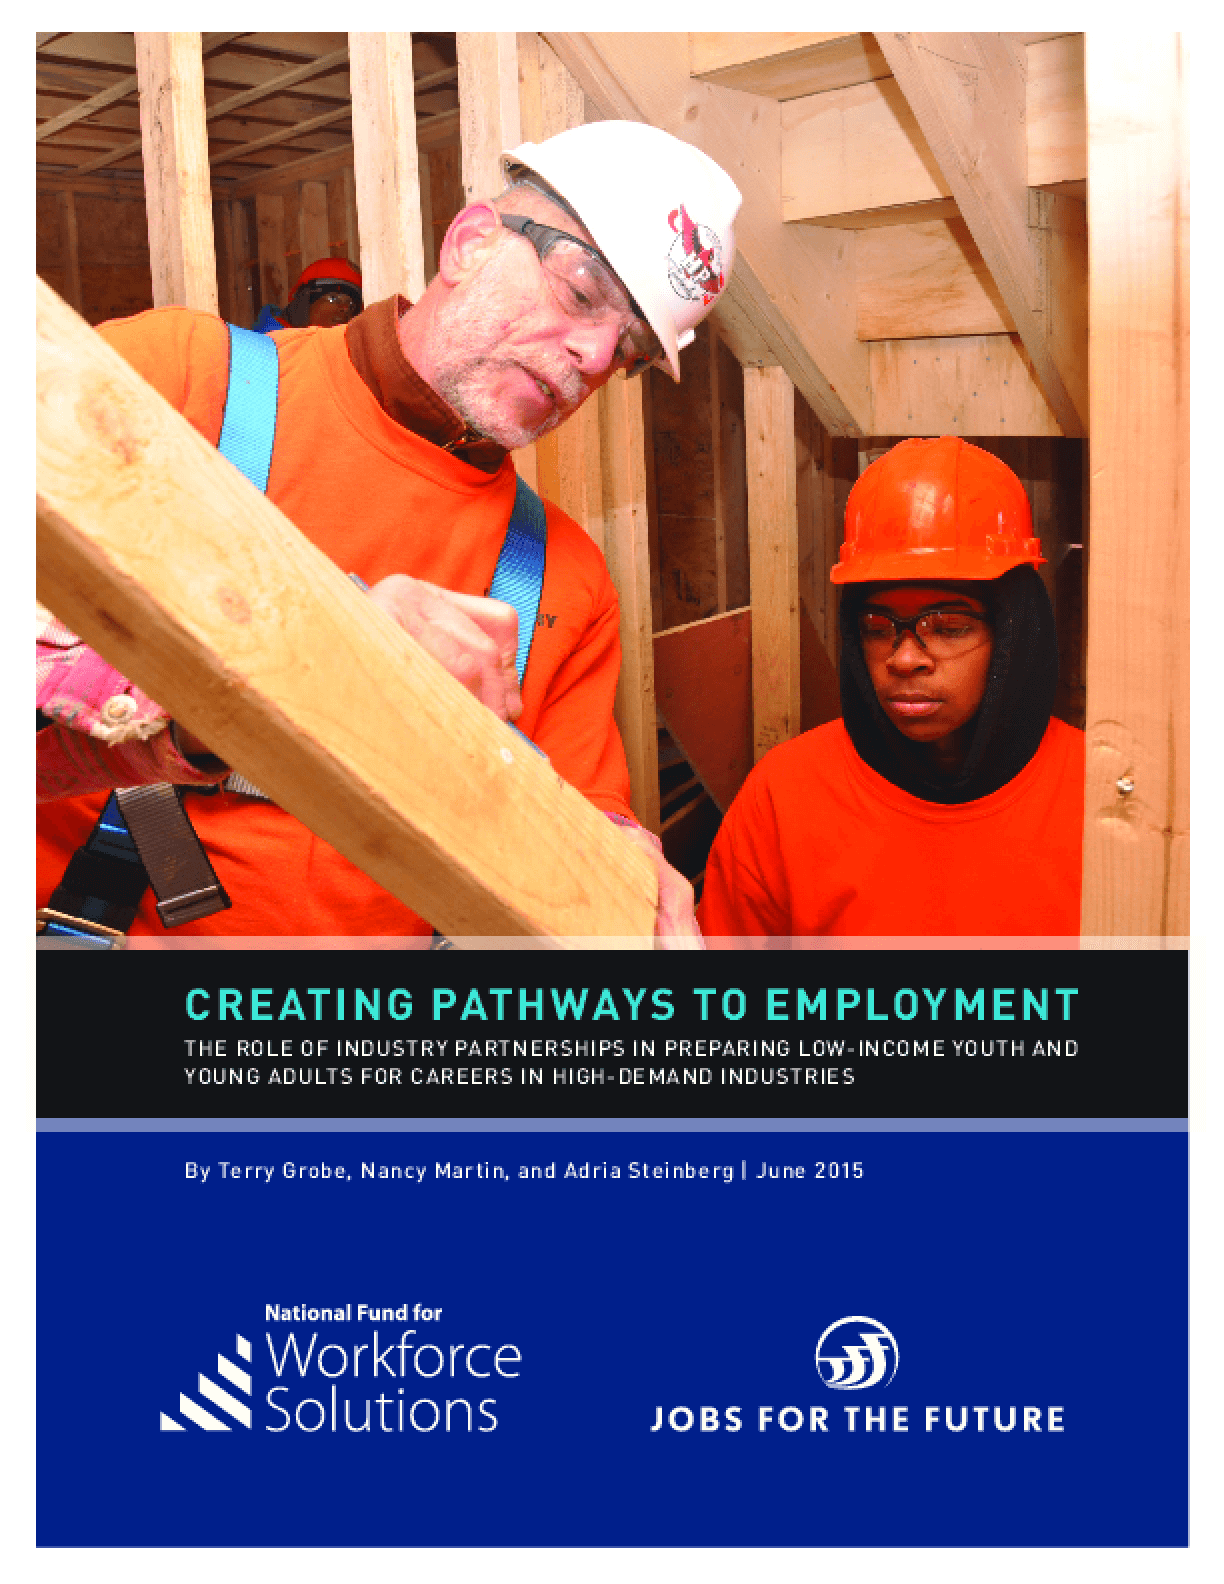 Creating Pathways to Employment: The Role of Industry Partnerships in Preparing Low-Income Youth and Young Adults for Careers in High-Demand Industries